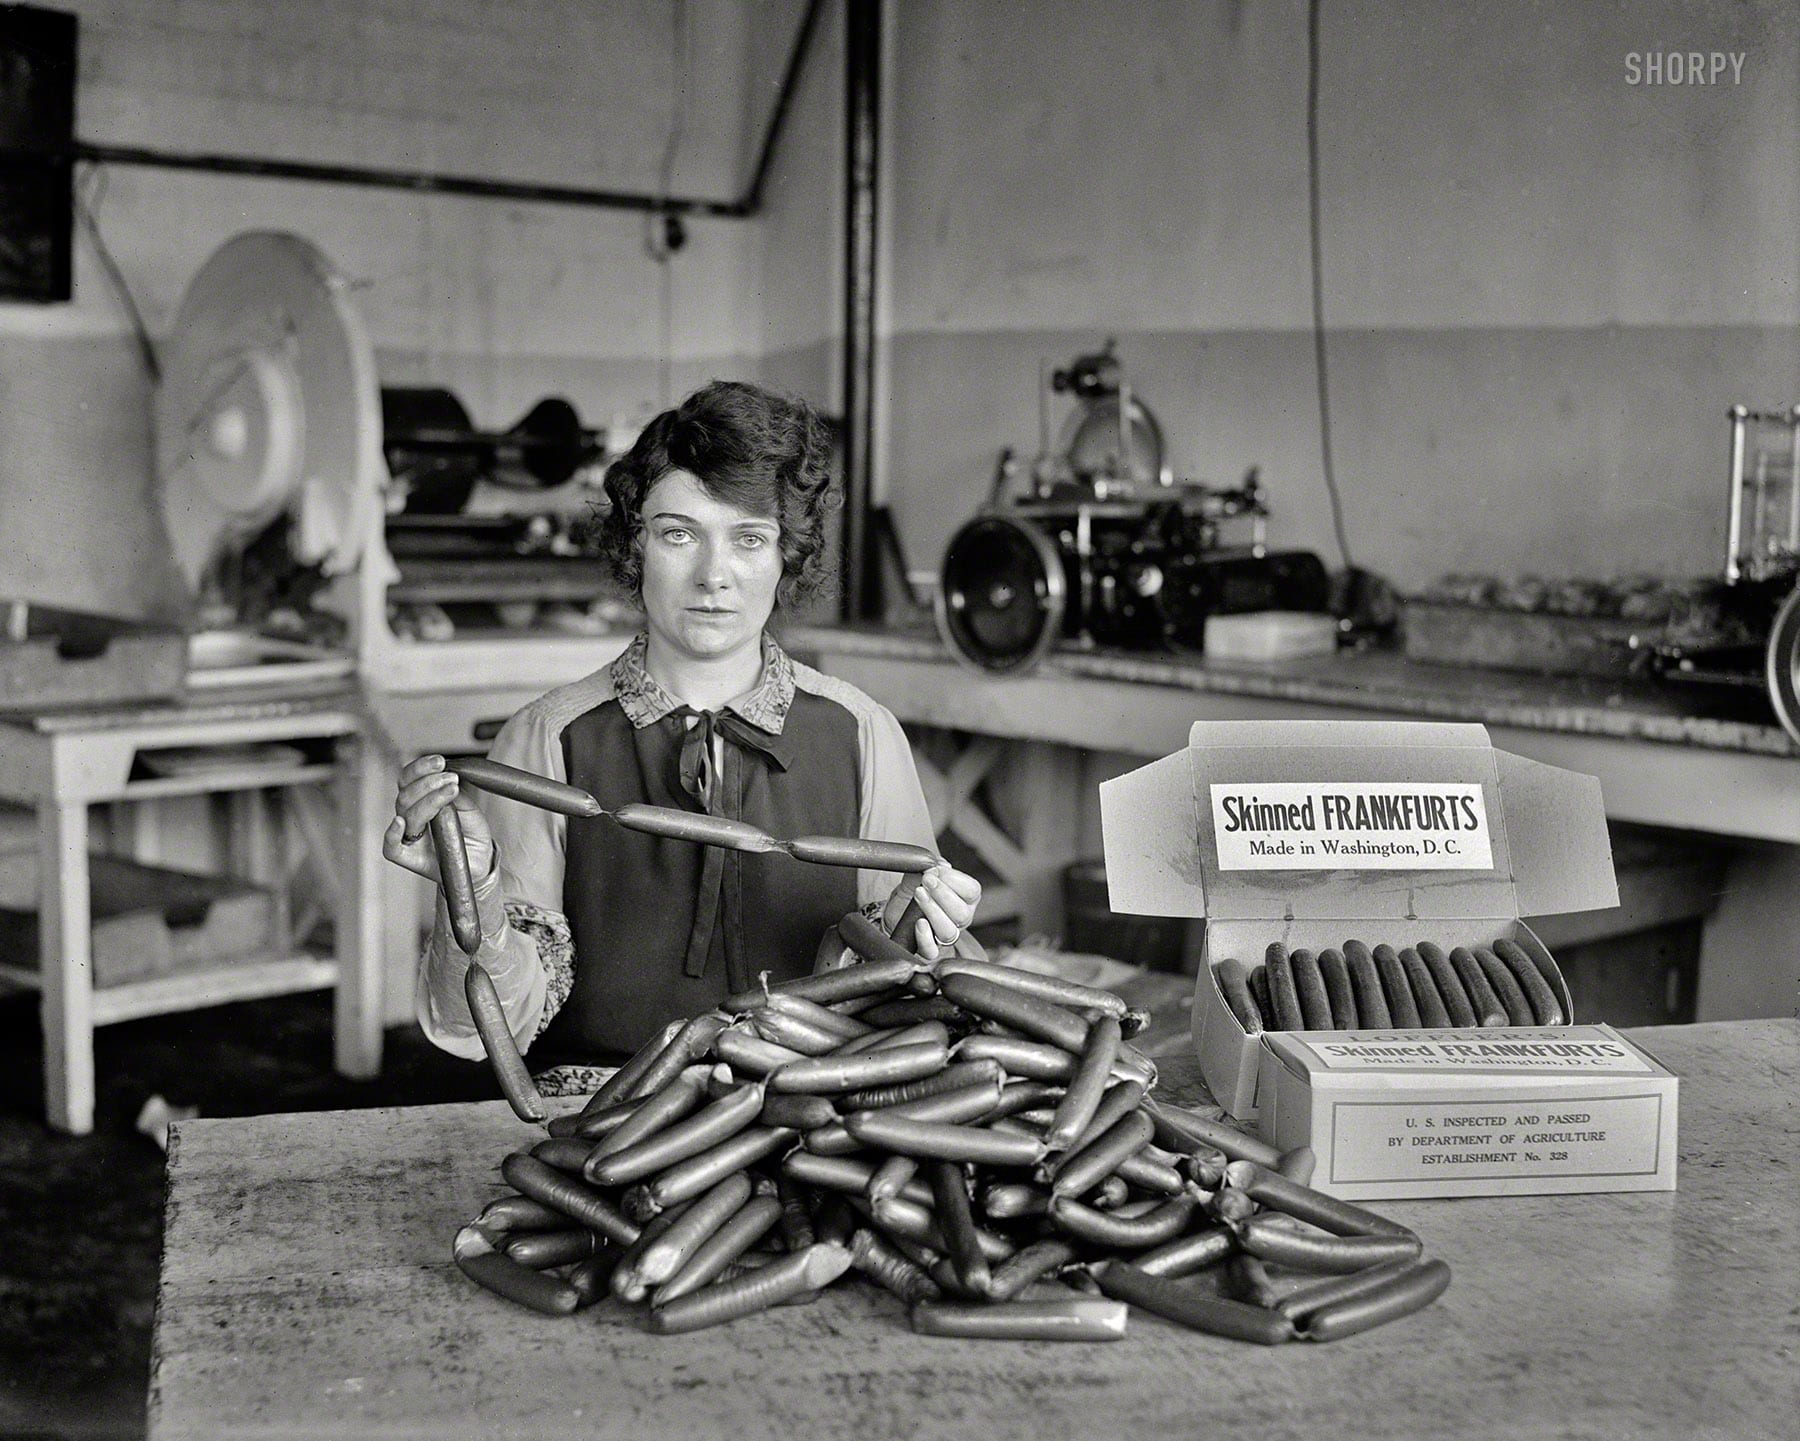 """1927. """"Skinned frankfurts, made in Washington, D.C."""" What Bismarck said about laws and sausages: It turns out you can watch them (or not watch them) being made in the same place. Harris & Ewing glass negative."""